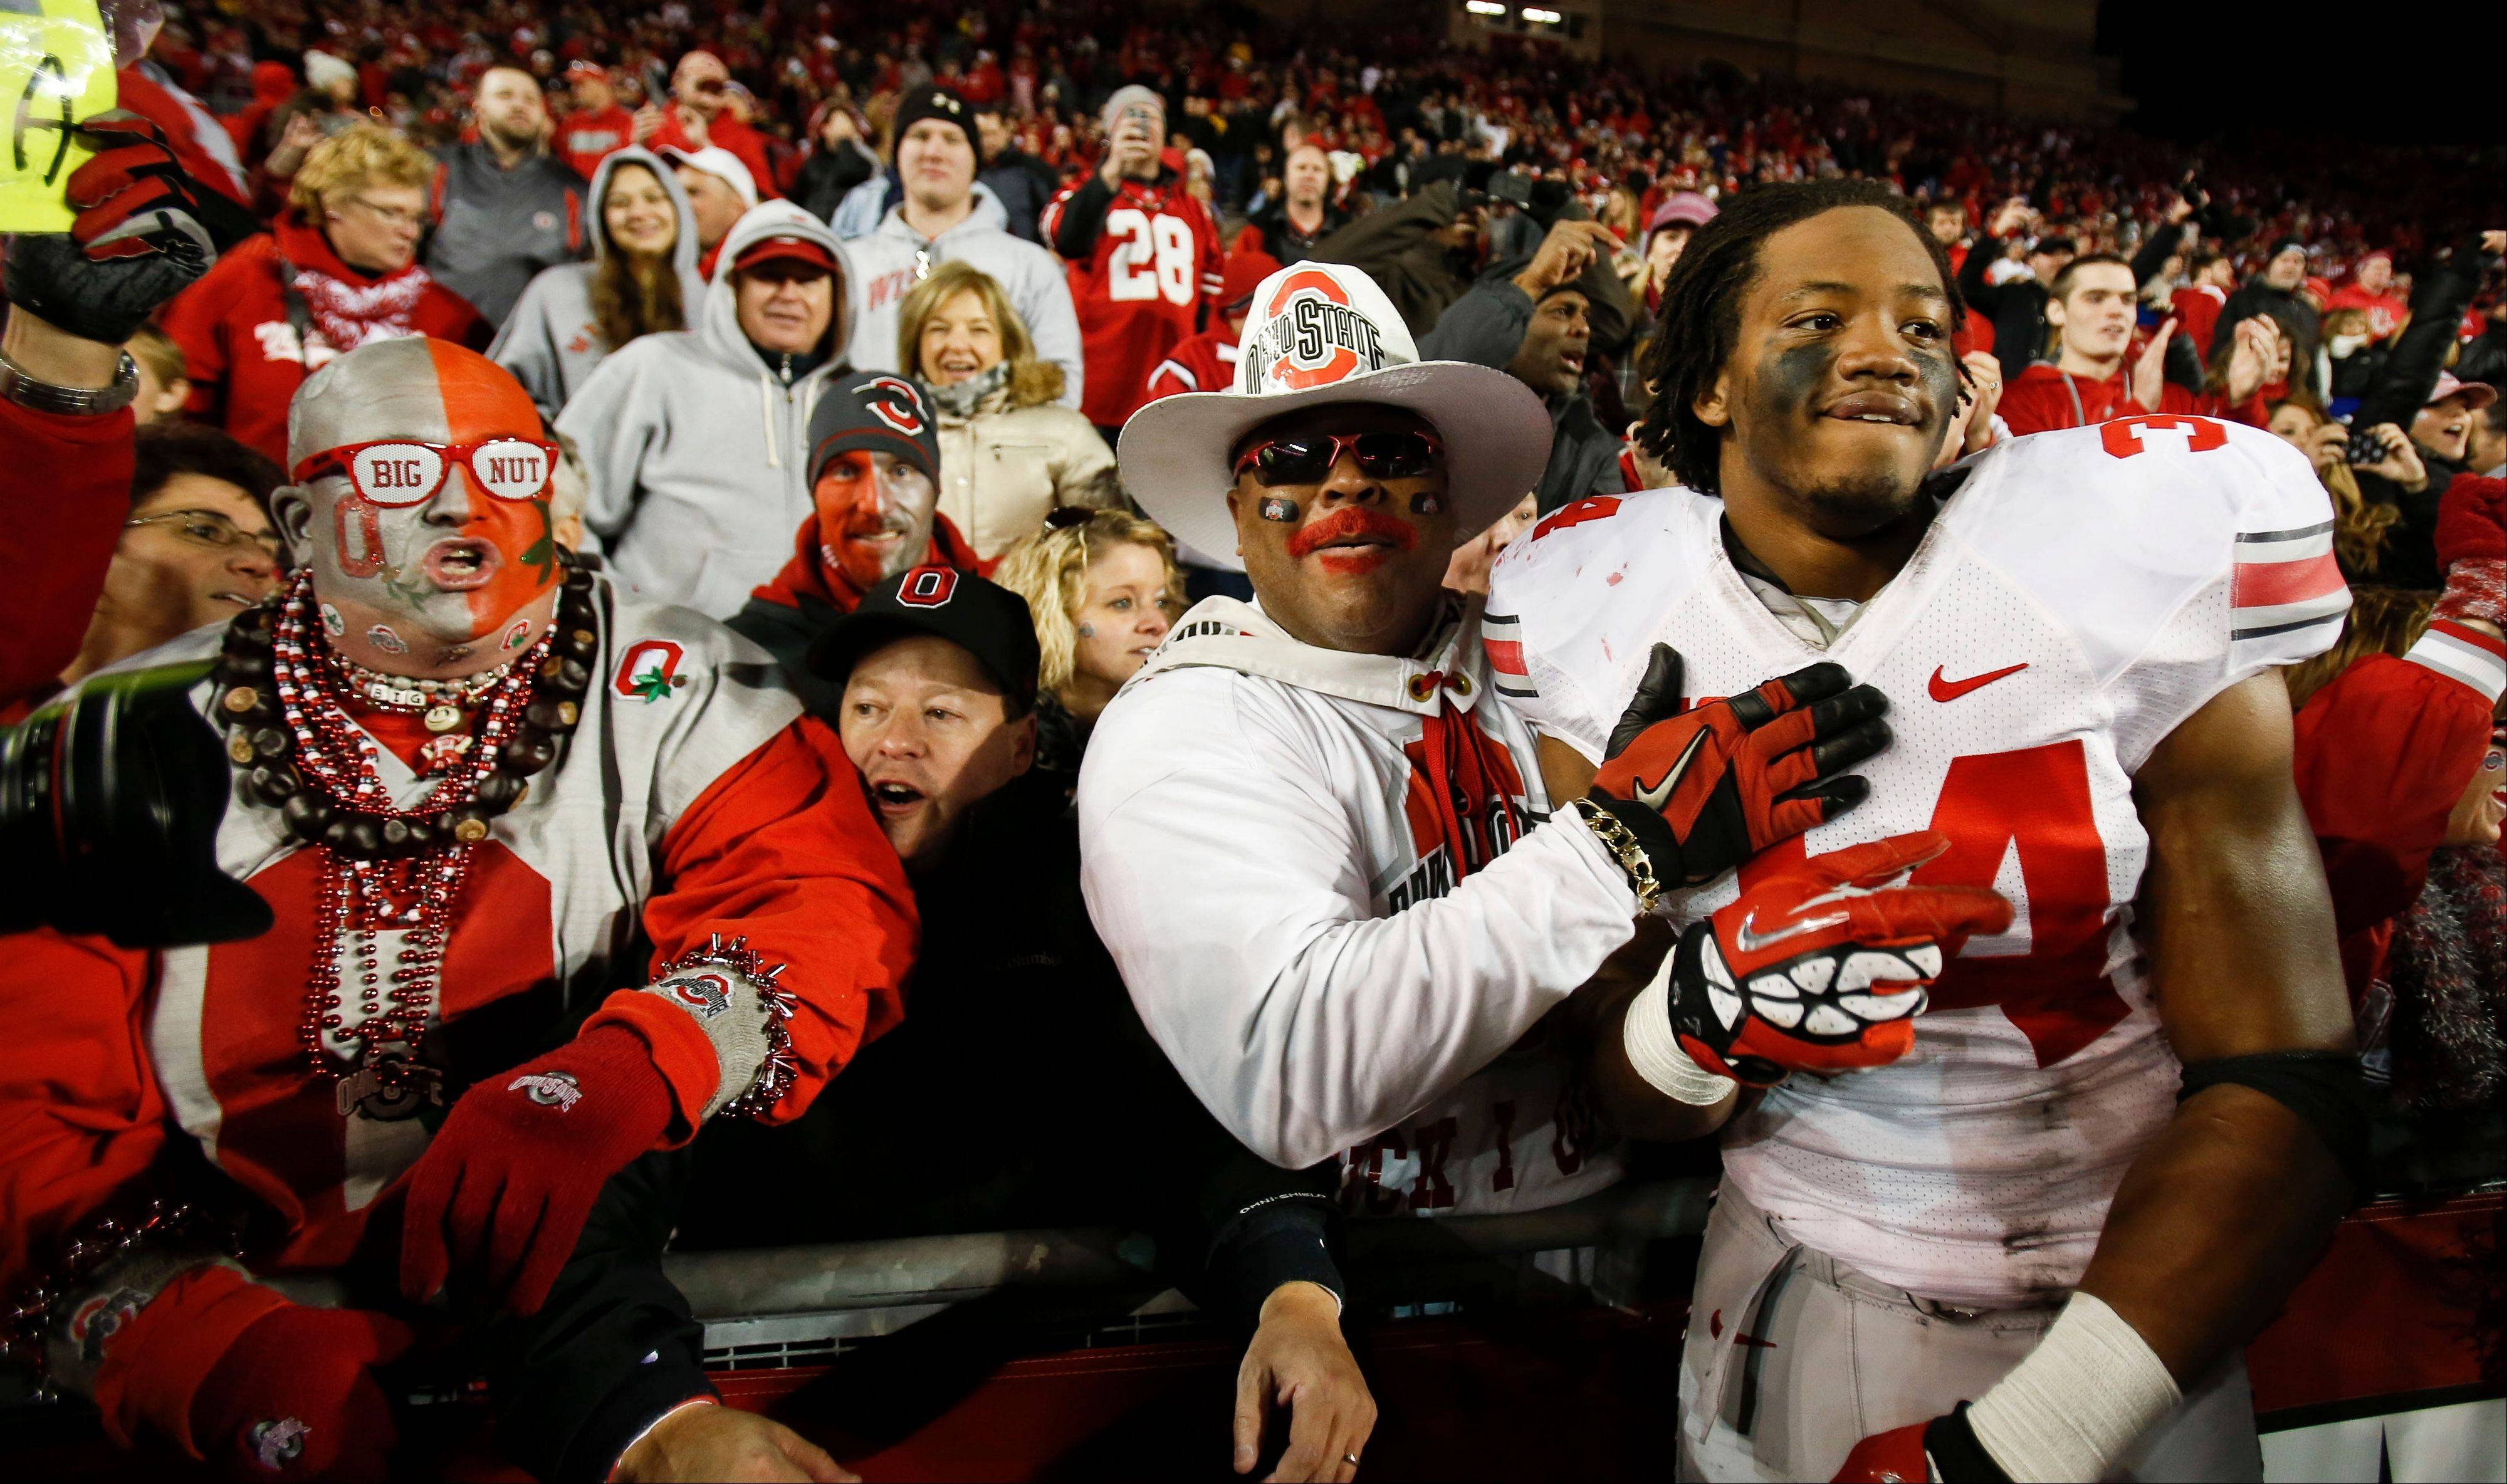 Ohio State fans celebrate Saturday with Carlos Hyde after the Buckeyes beat Wisconsin 21-14 in overtime in Madison, Wis. All that stands between the Buckeyes and a perfect season is archrival Michigan.